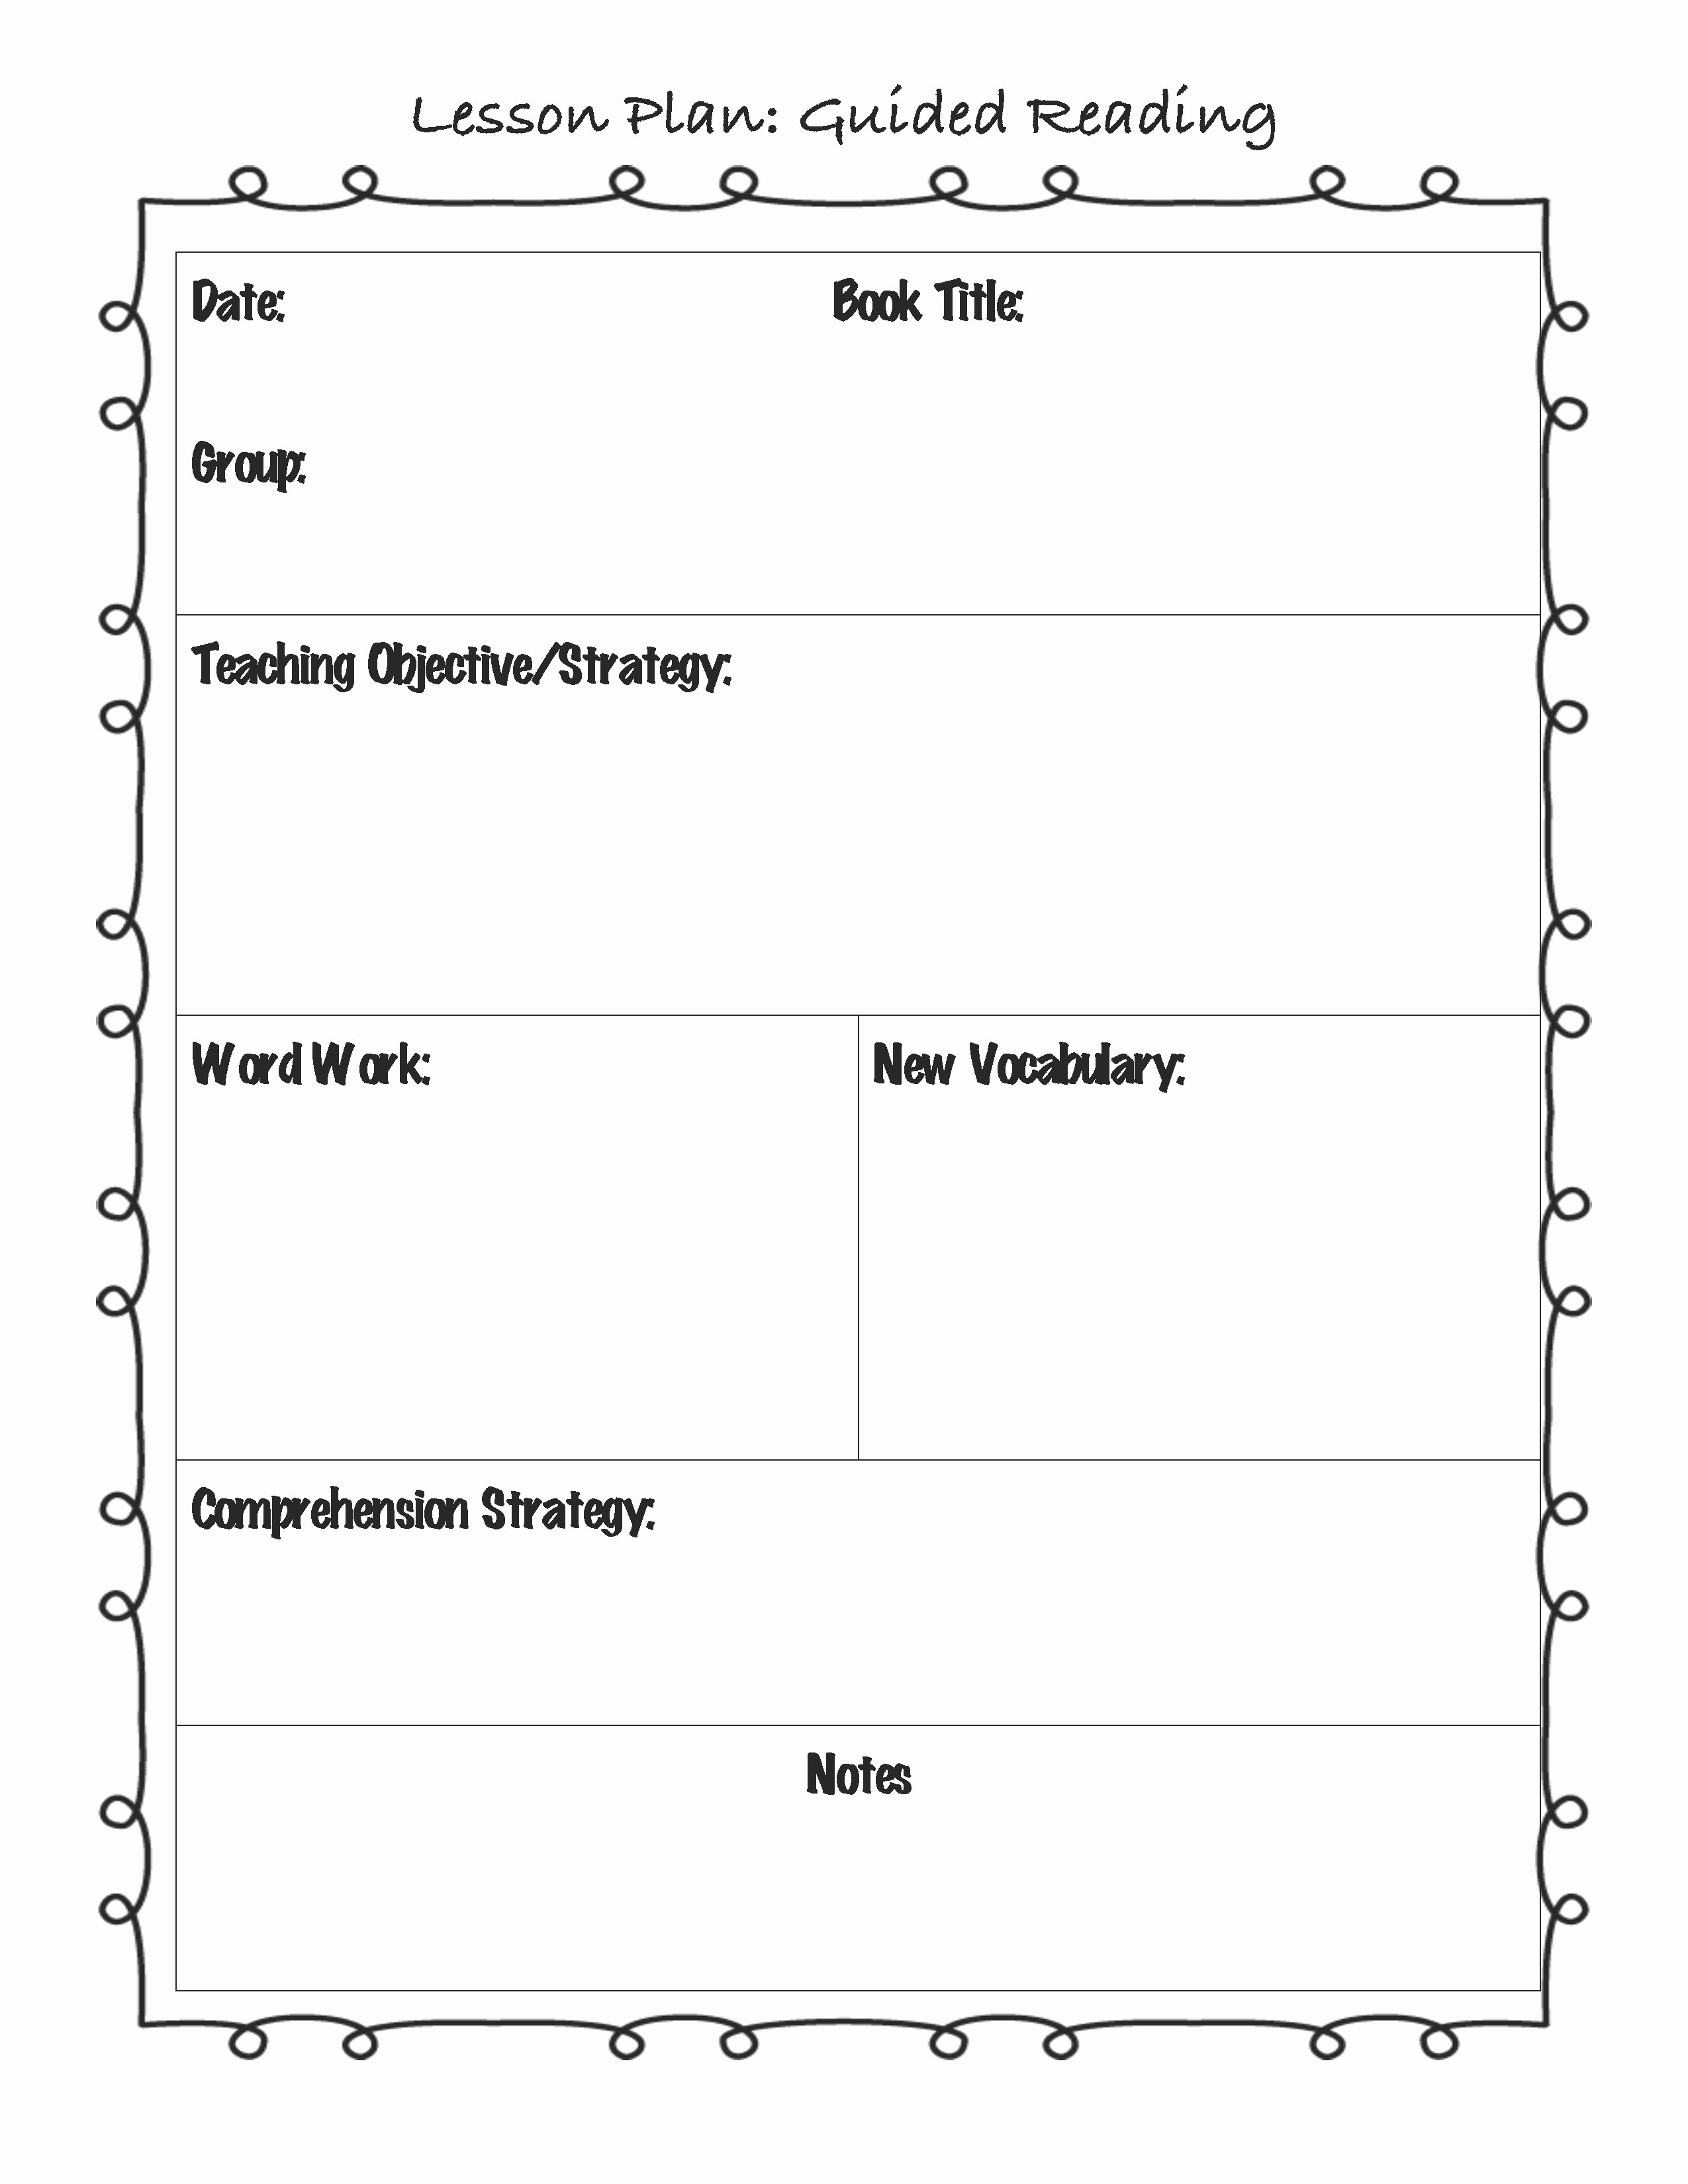 Example Lesson Plan Template Inspirational Guided Reading Lesson Plan Template